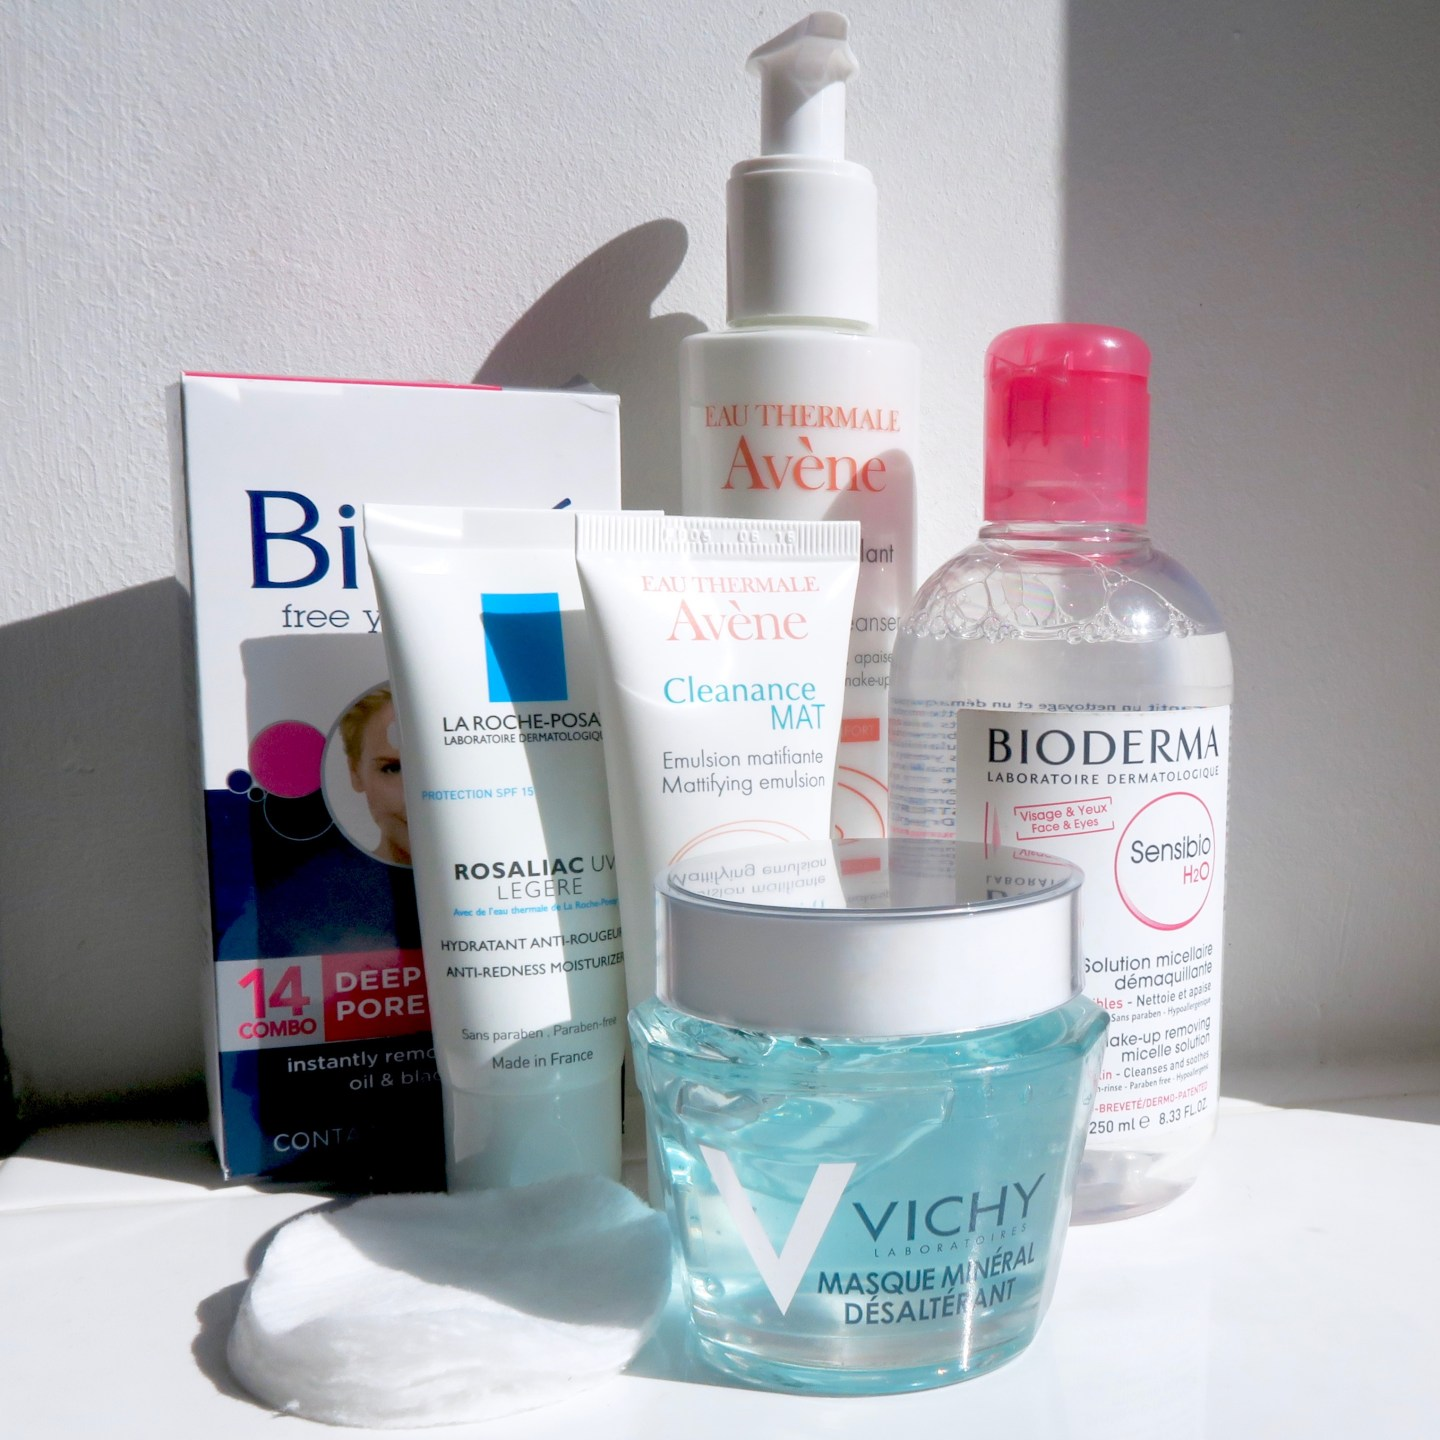 Moisturisers for rosacea and sensitive skin: I've been finding skincare favourites with Boots